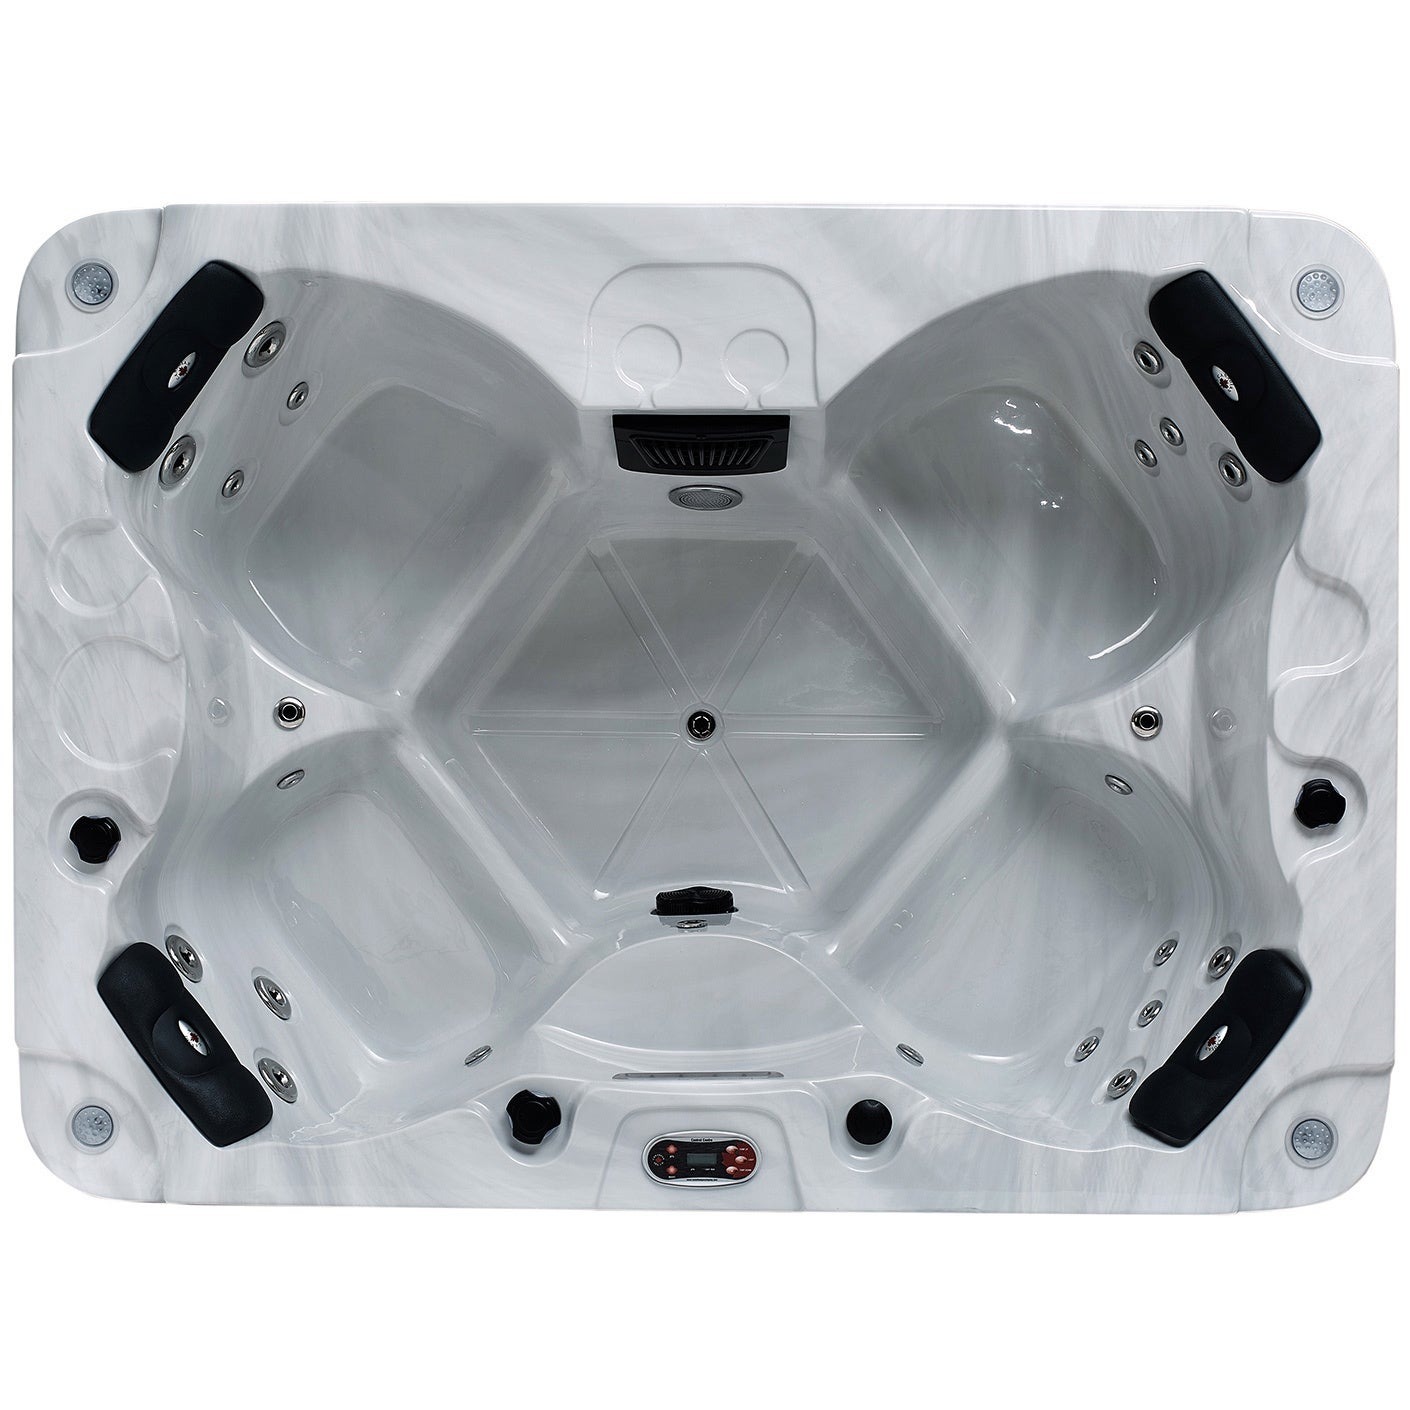 Canadian Spa Halifax Se 4 Person 22 Jet Plug Play Spa Overstock 15616311